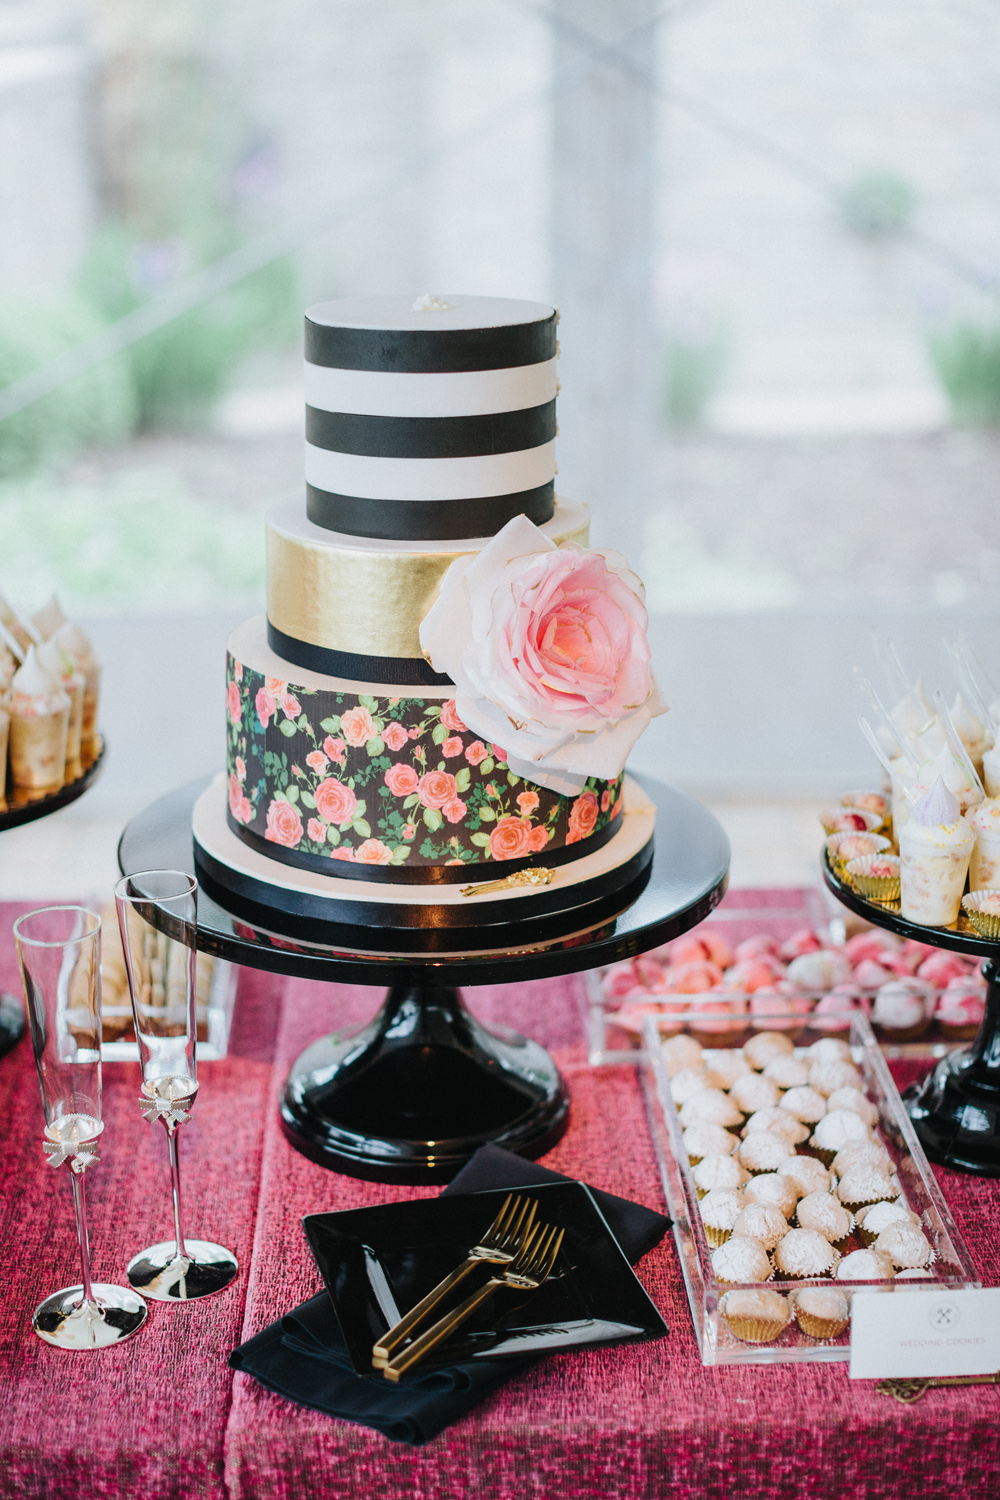 Preppy wedding cake with different tiers stripes and flower pattern designs